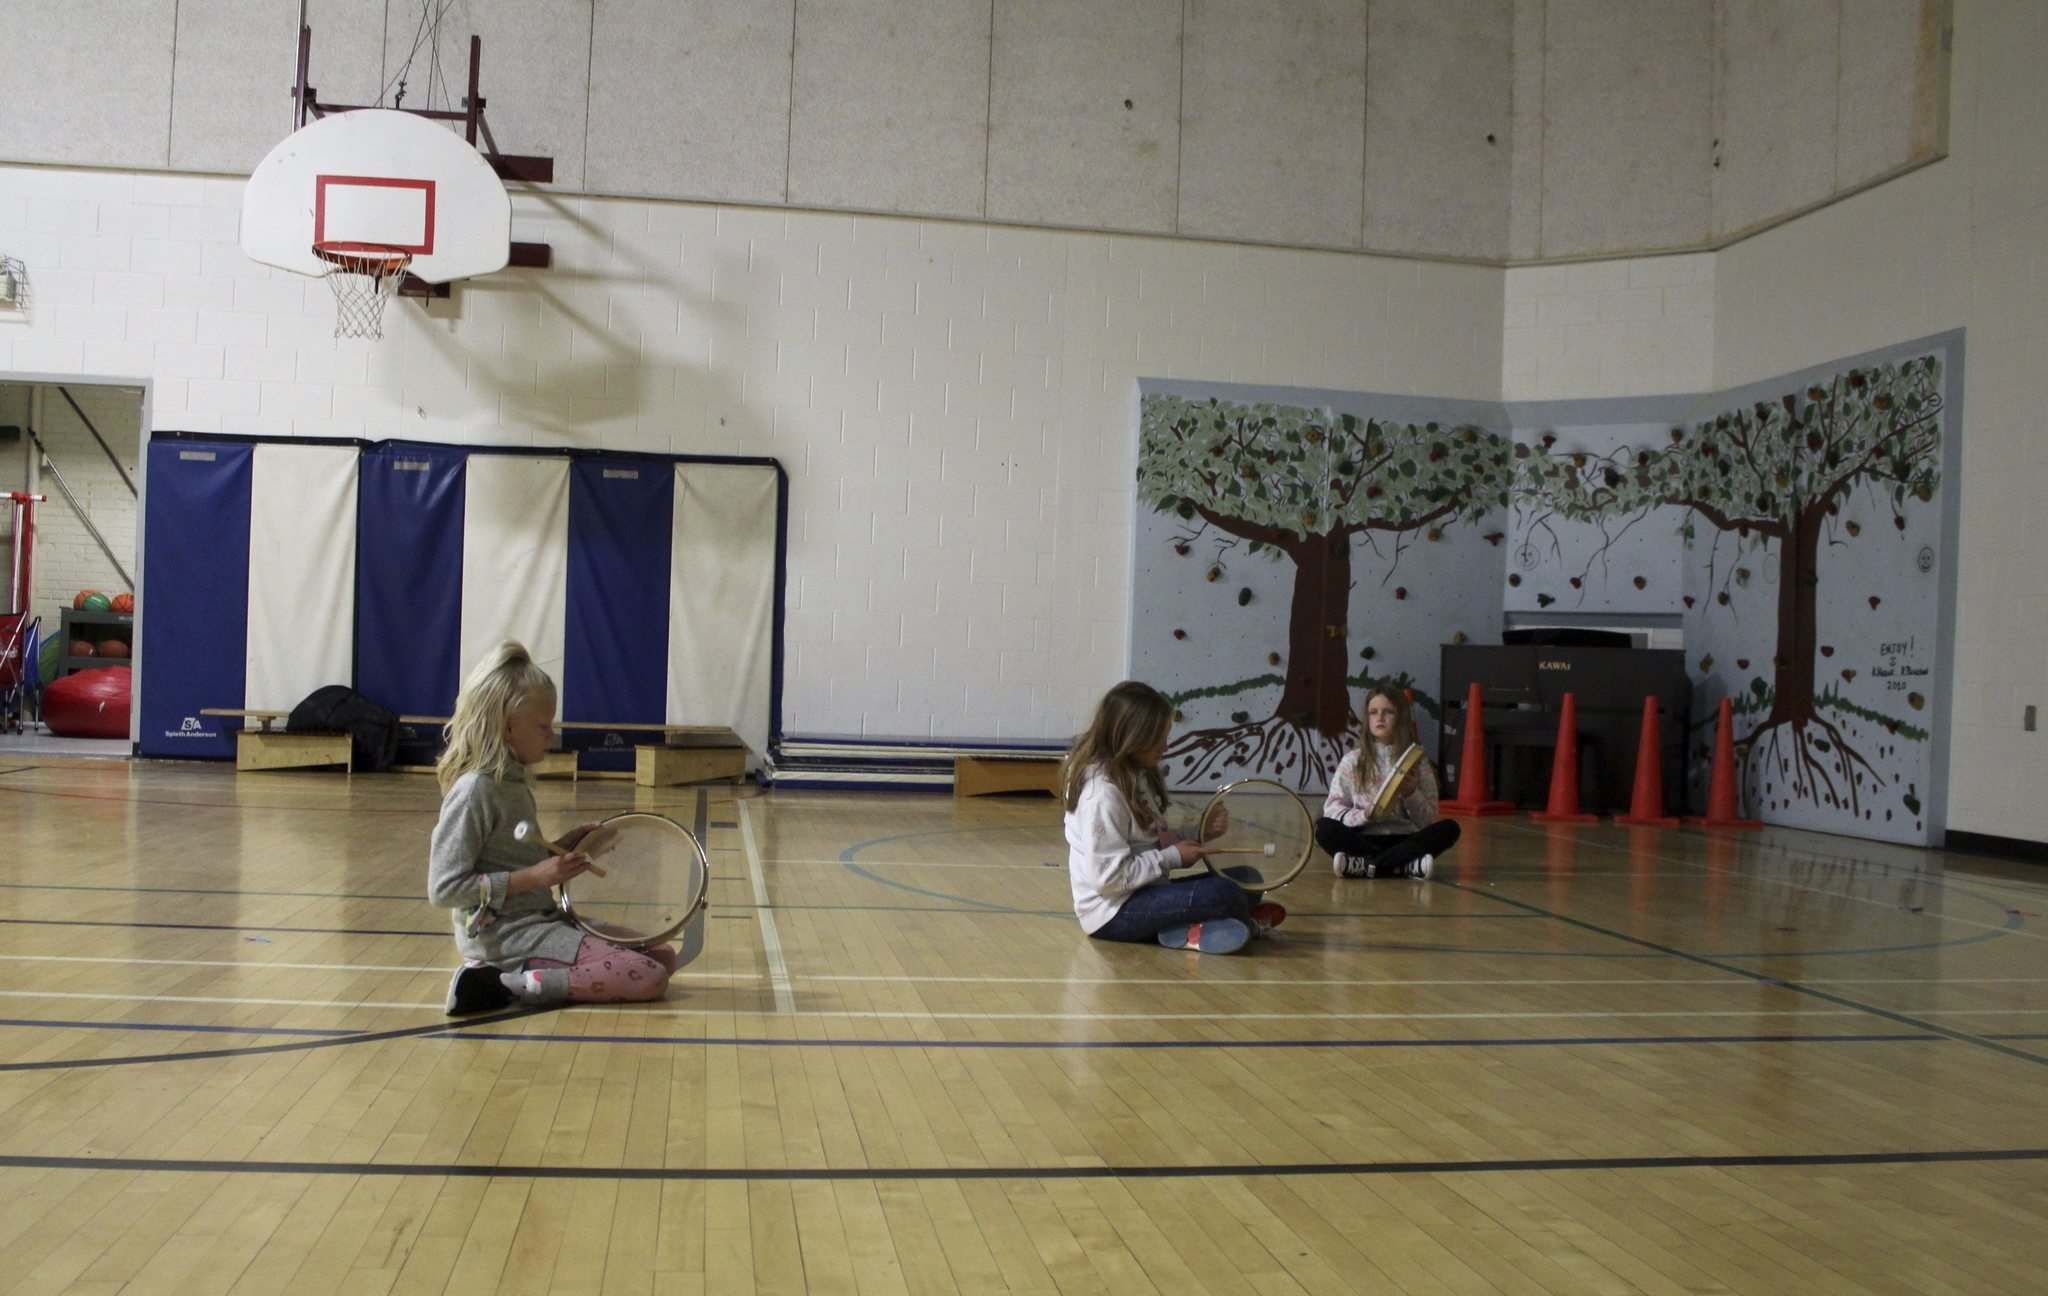 Socially-distanced music class takes place in the school gymnasium.